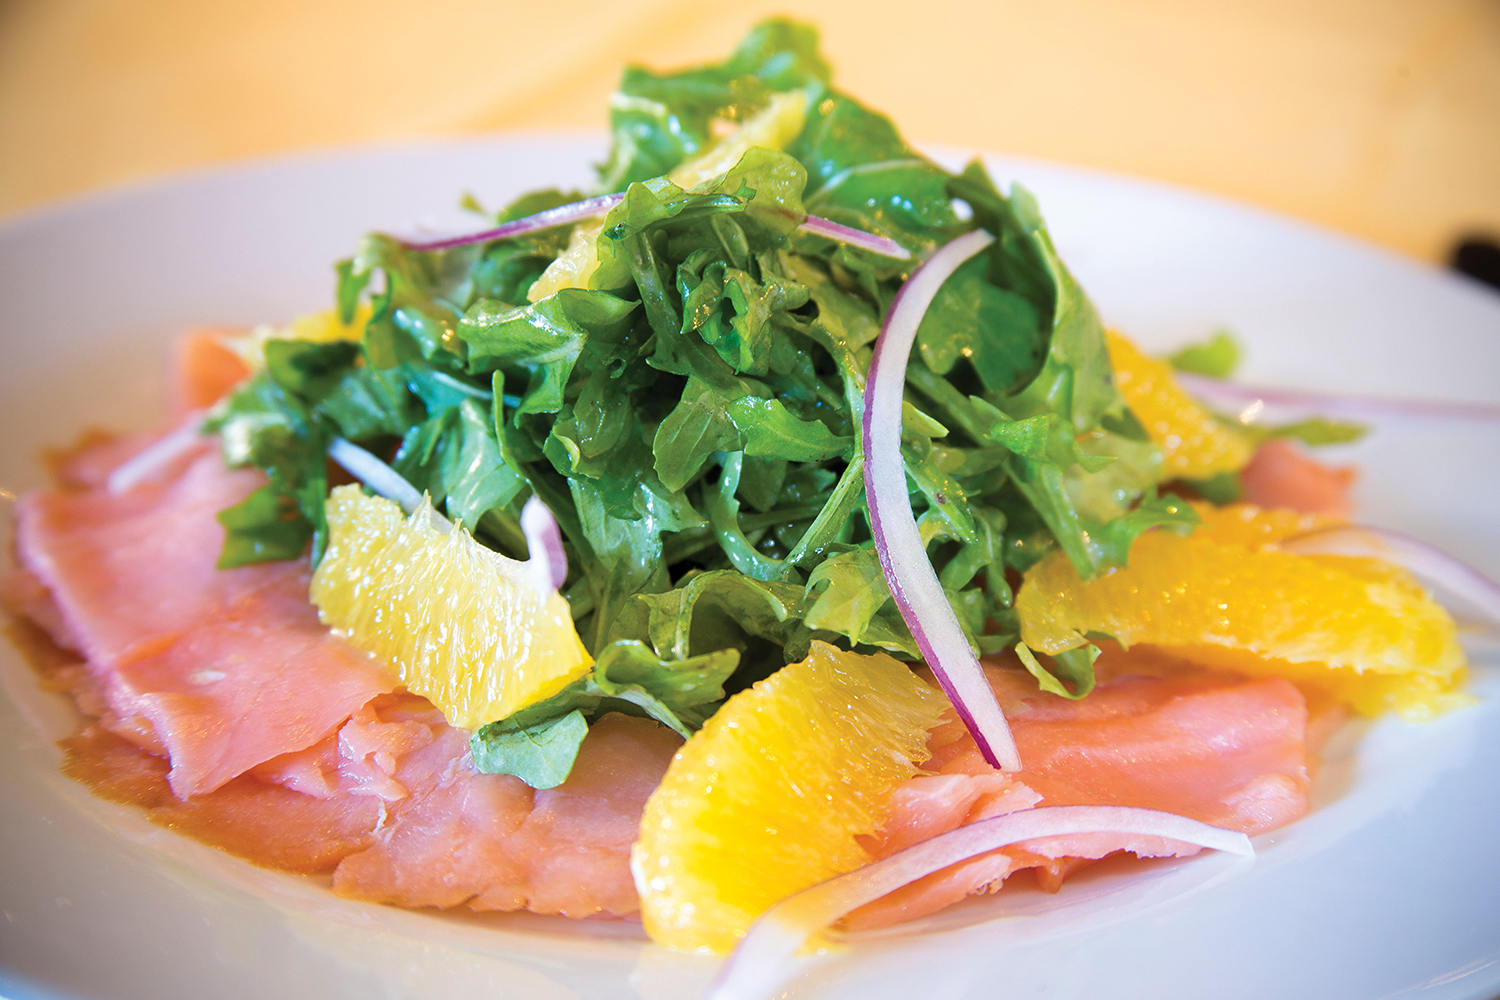 Smoked Salmon Salad at Terry's Finer Foods